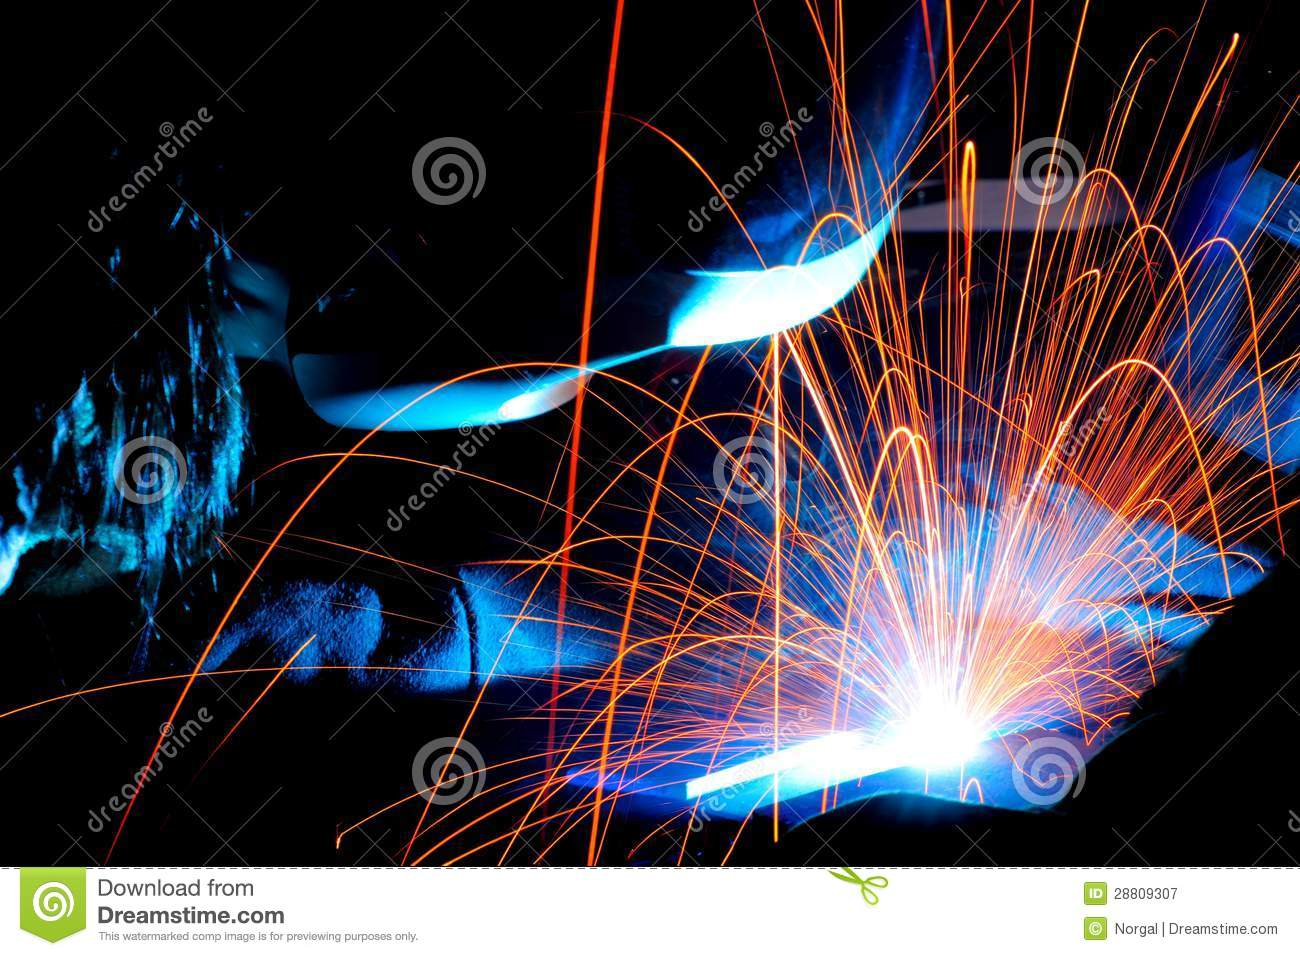 Welding sparks royalty free stock photography image - Webaccess leroymerlin fr ...